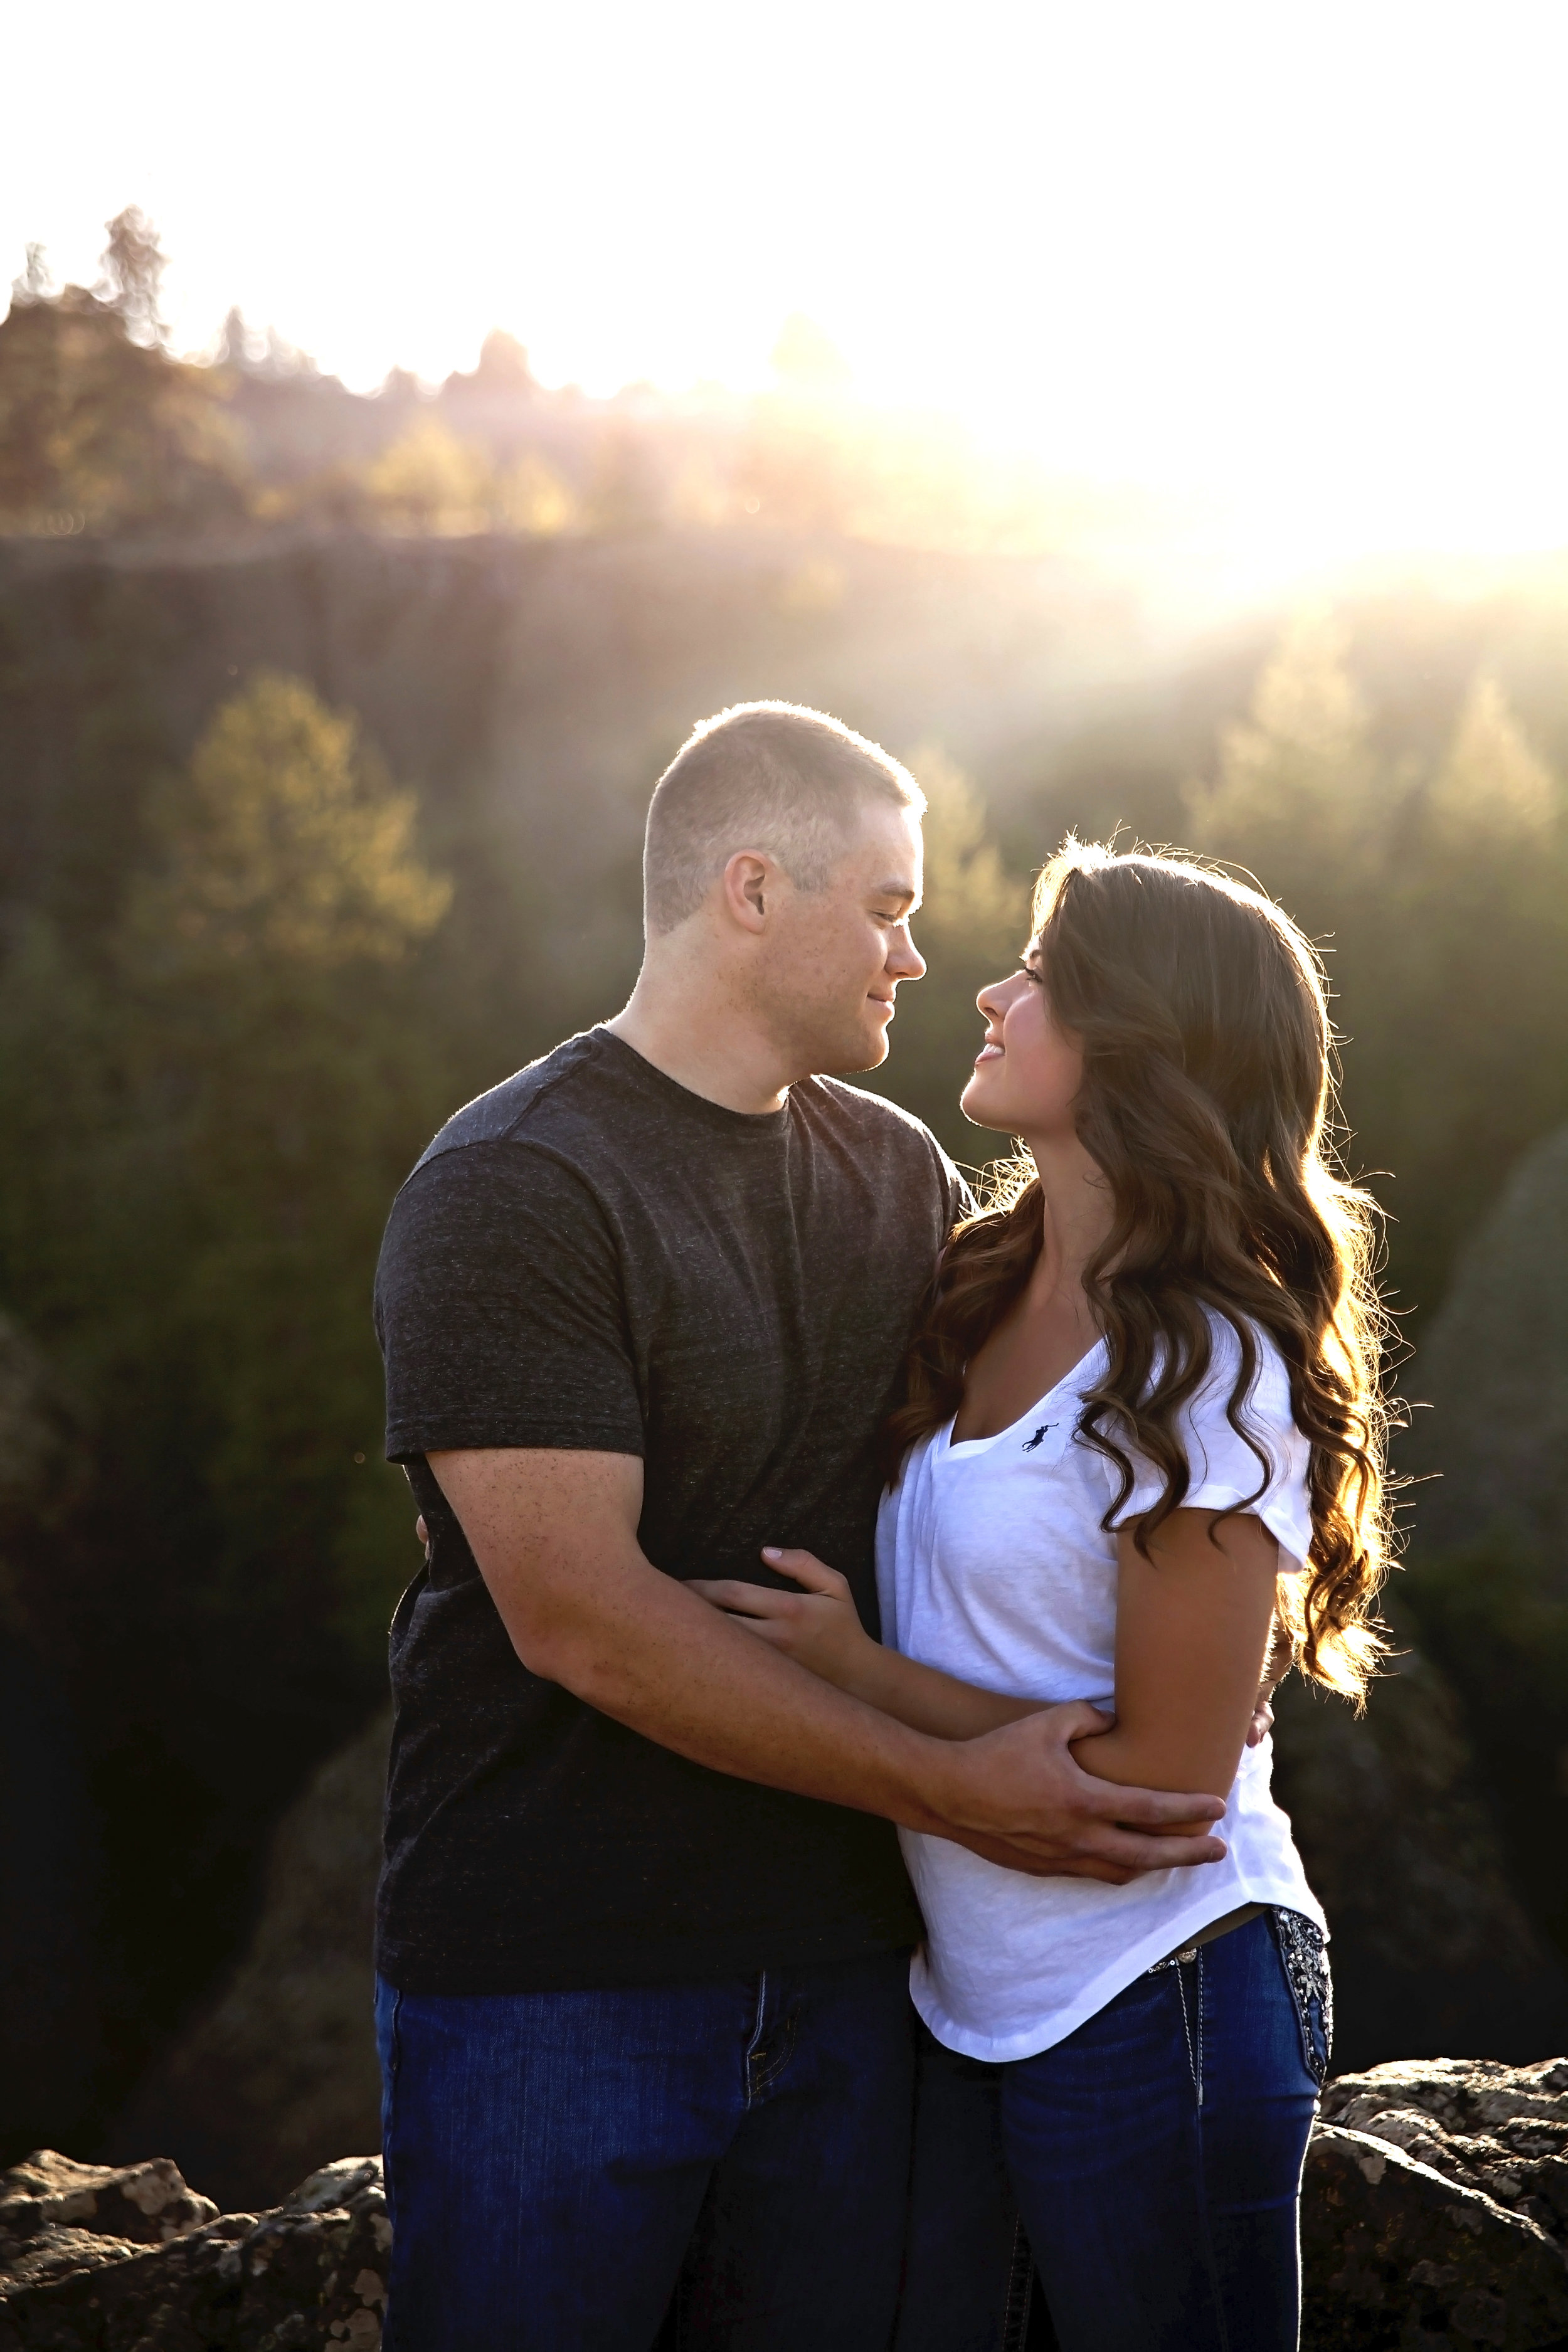 Spokane engagement photographer takes engagement pictures at Bowl and Pitcher, Riverside state park in Spokane